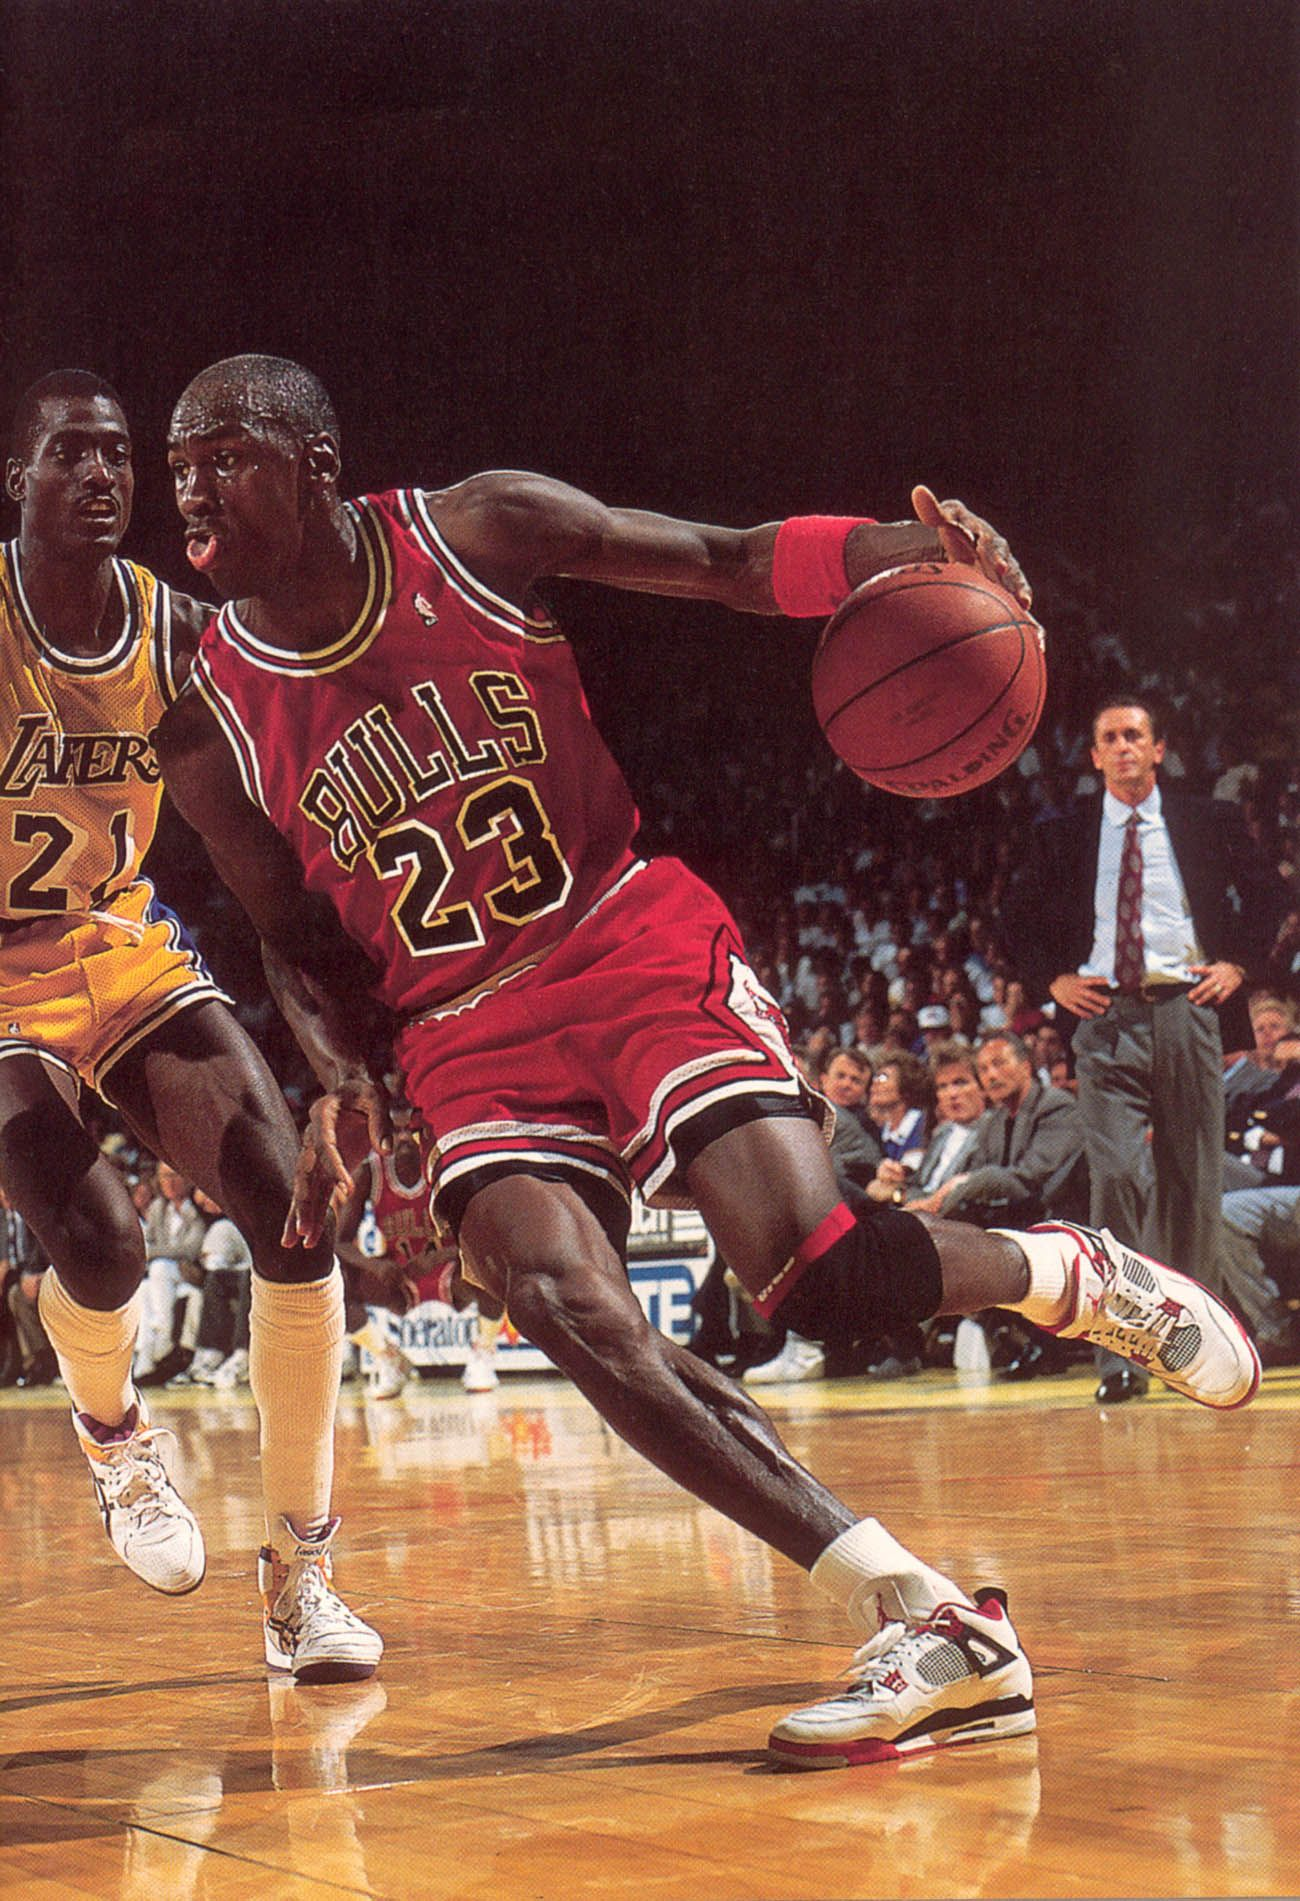 the best attitude 117e0 acf29 Rare Michael Jordan photos part 2 - Imgur